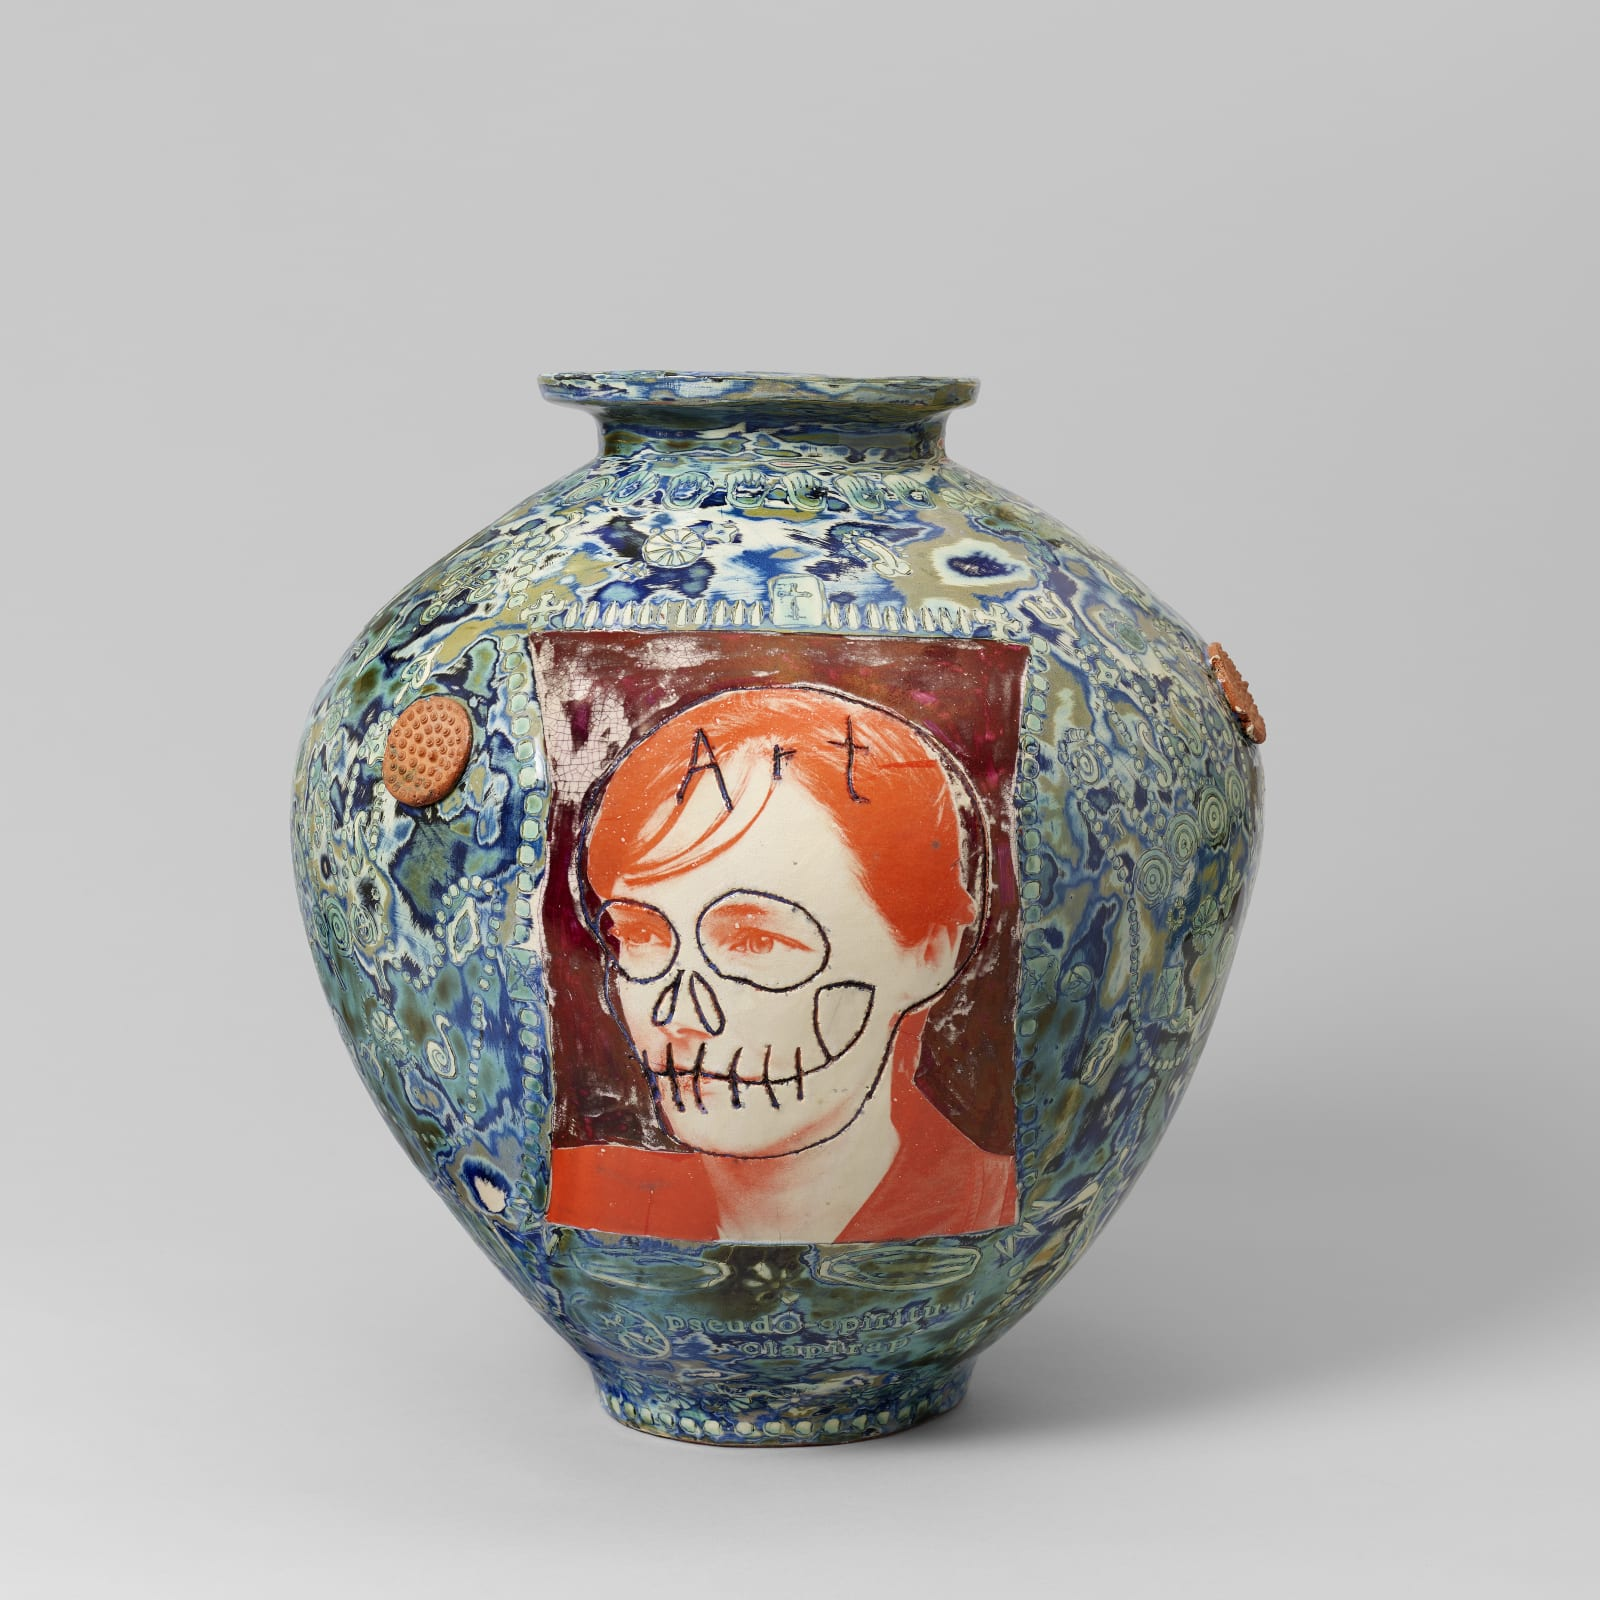 Grayson Perry  b.1960  Pseudo Spiritual Clap Trap, 1998  glazed earthenware  15 x 11 1/8 x 11 1/8 inches / 38.1 x 28.3 x 28.3 cm